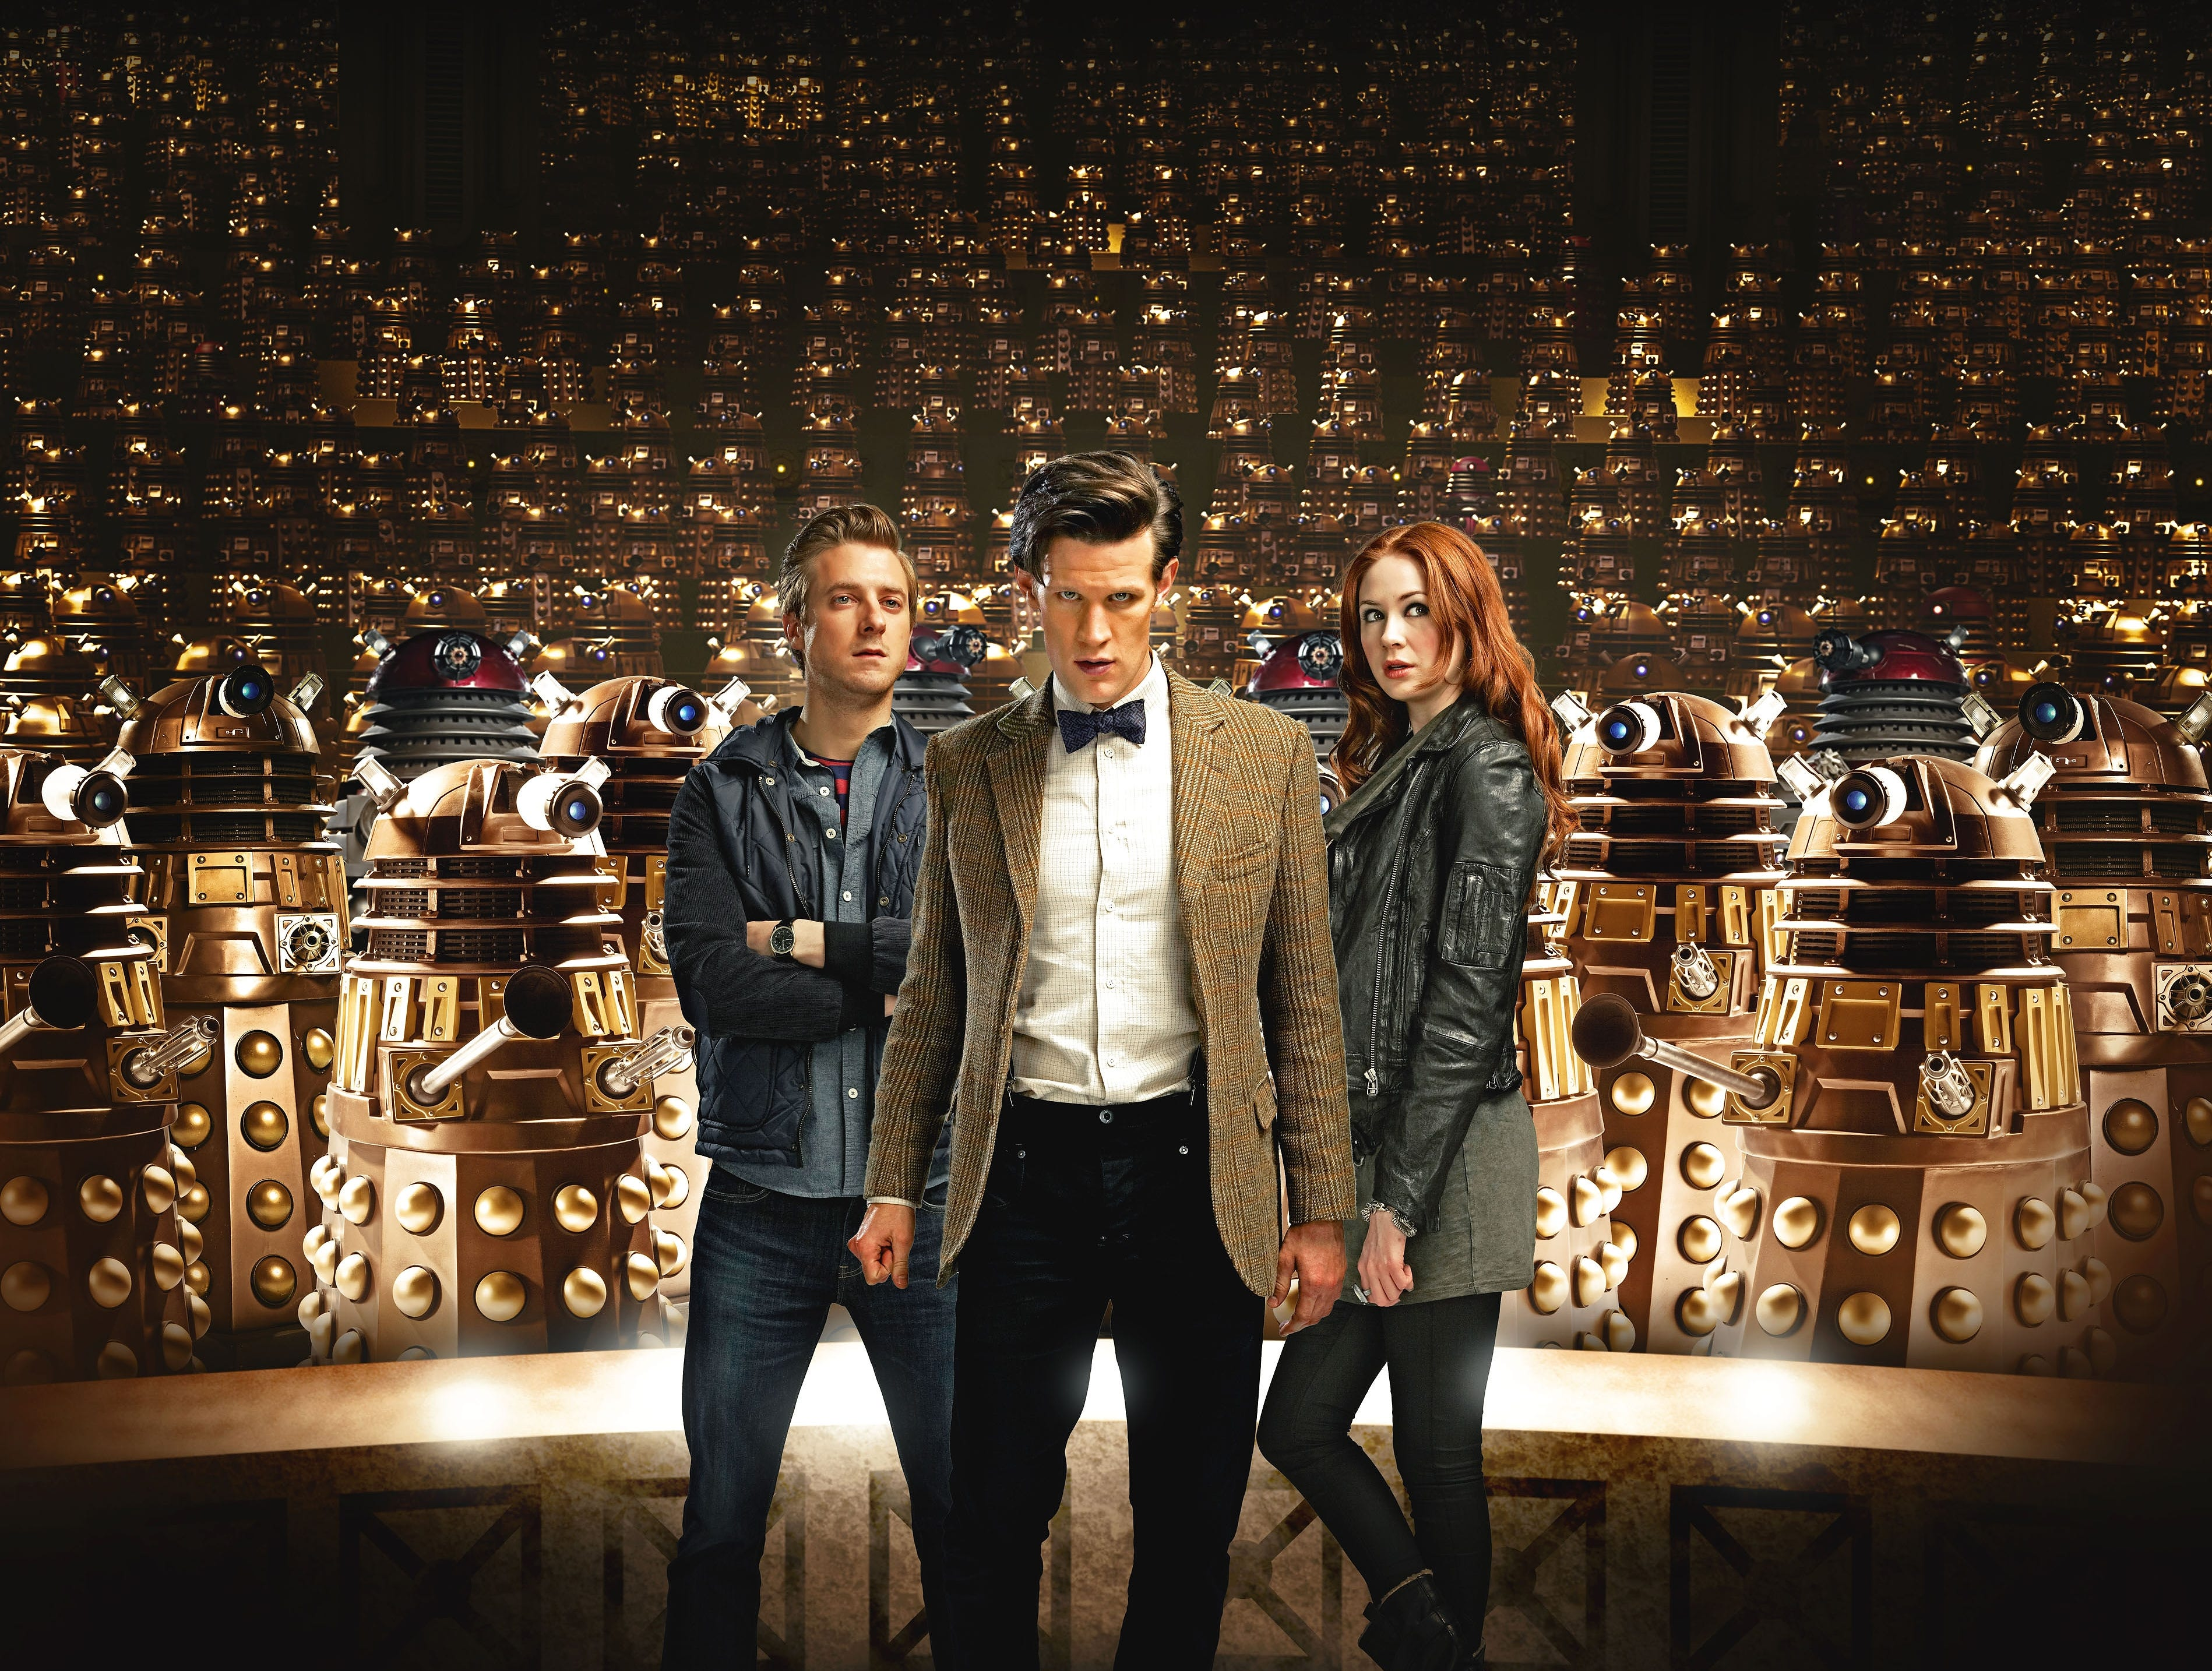 """The Eleventh Doctor was joined by Rory Williams (Arthur Darvill) and Amy Pond (Karen Gillan) with both spending several seasons with Smith. Gillan has become a Marvel movie mainstay, playing Nebula in the """"Guardians of the Galaxy"""" movies and """"Avengers: Infinity War."""" Darvill, meanwhile, was on the British series """"Broadchurch"""" and a recurring role on CW's """"DC's Legends of Tomorrow."""""""